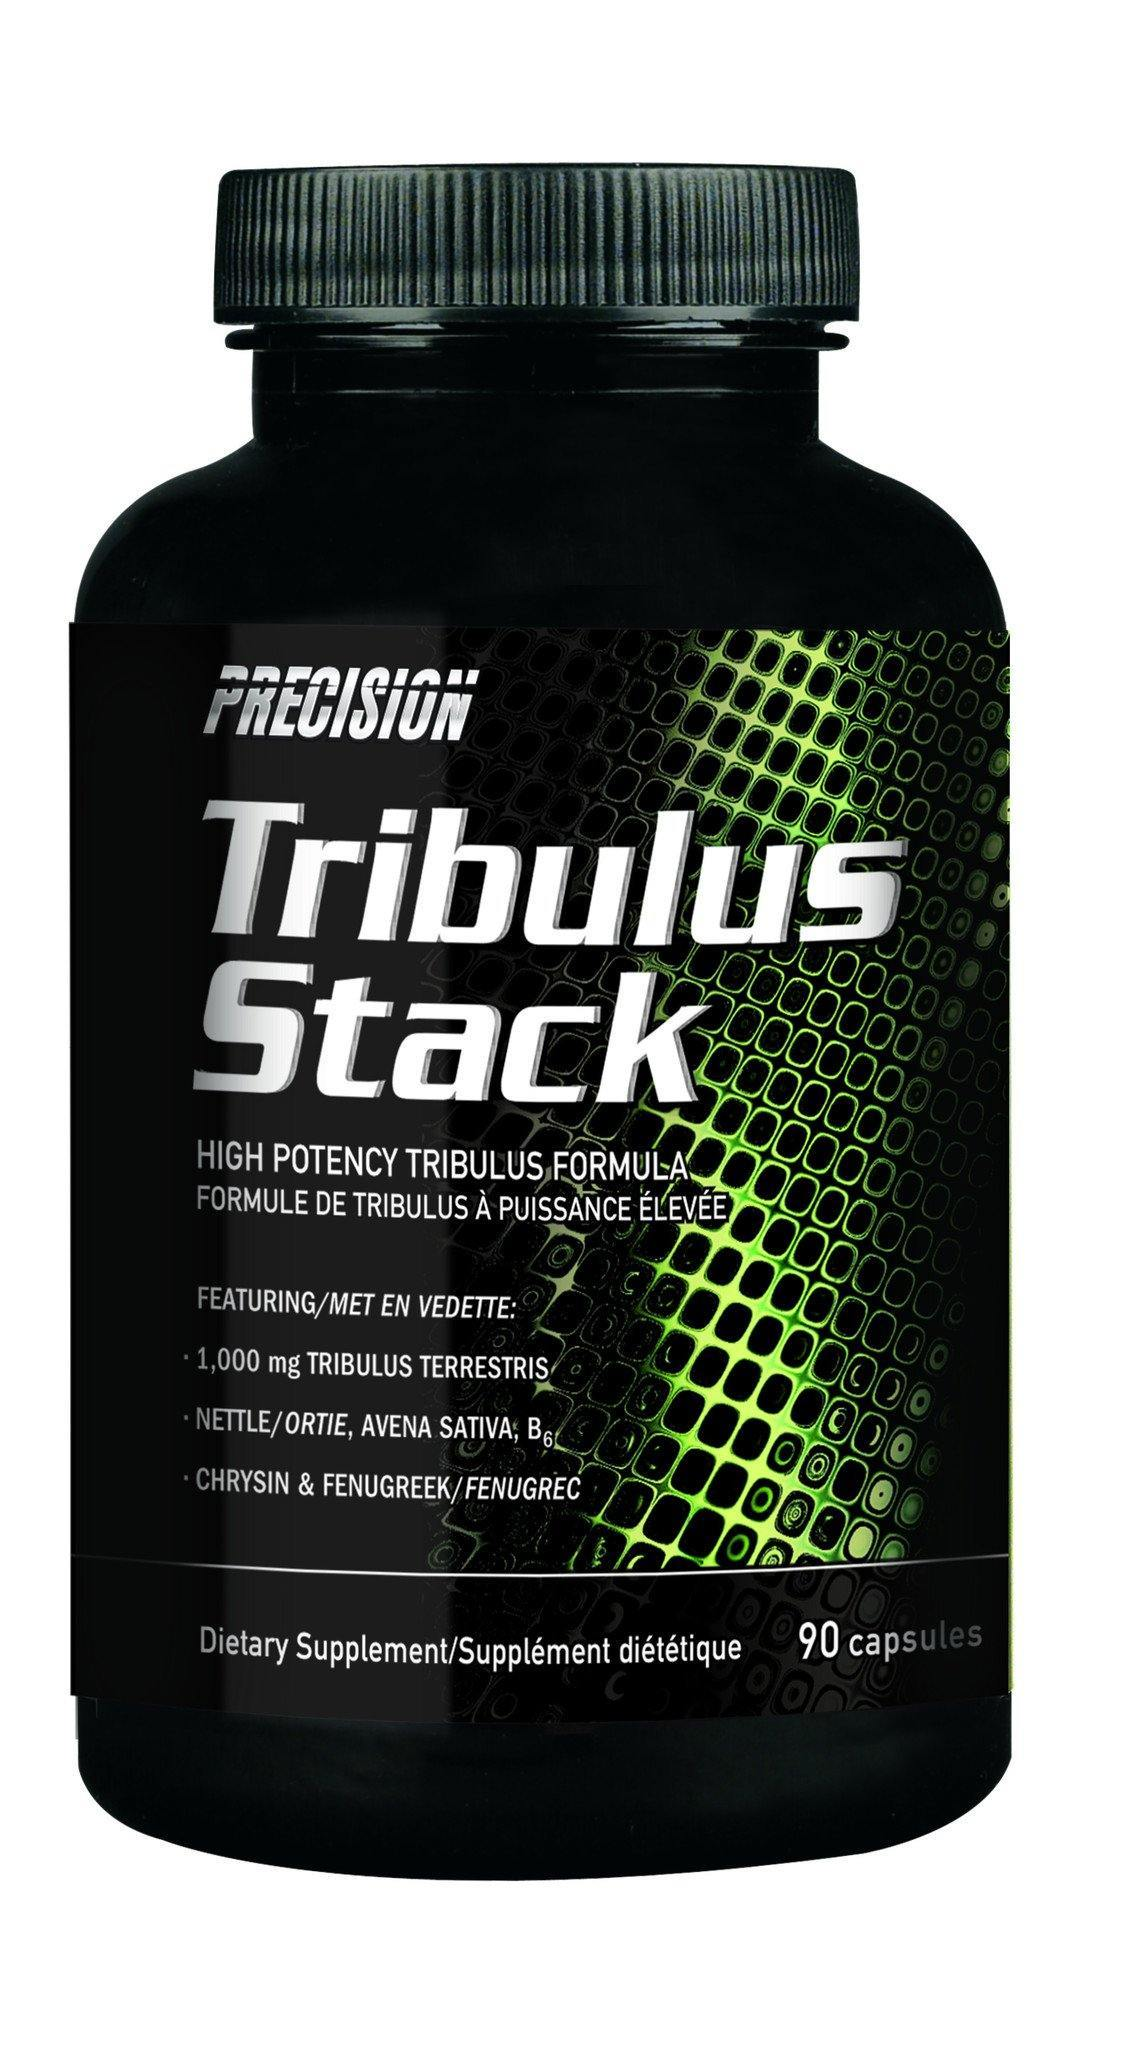 Supplements & Vitamins - Precision - Tribilus Stack, 90 Caps